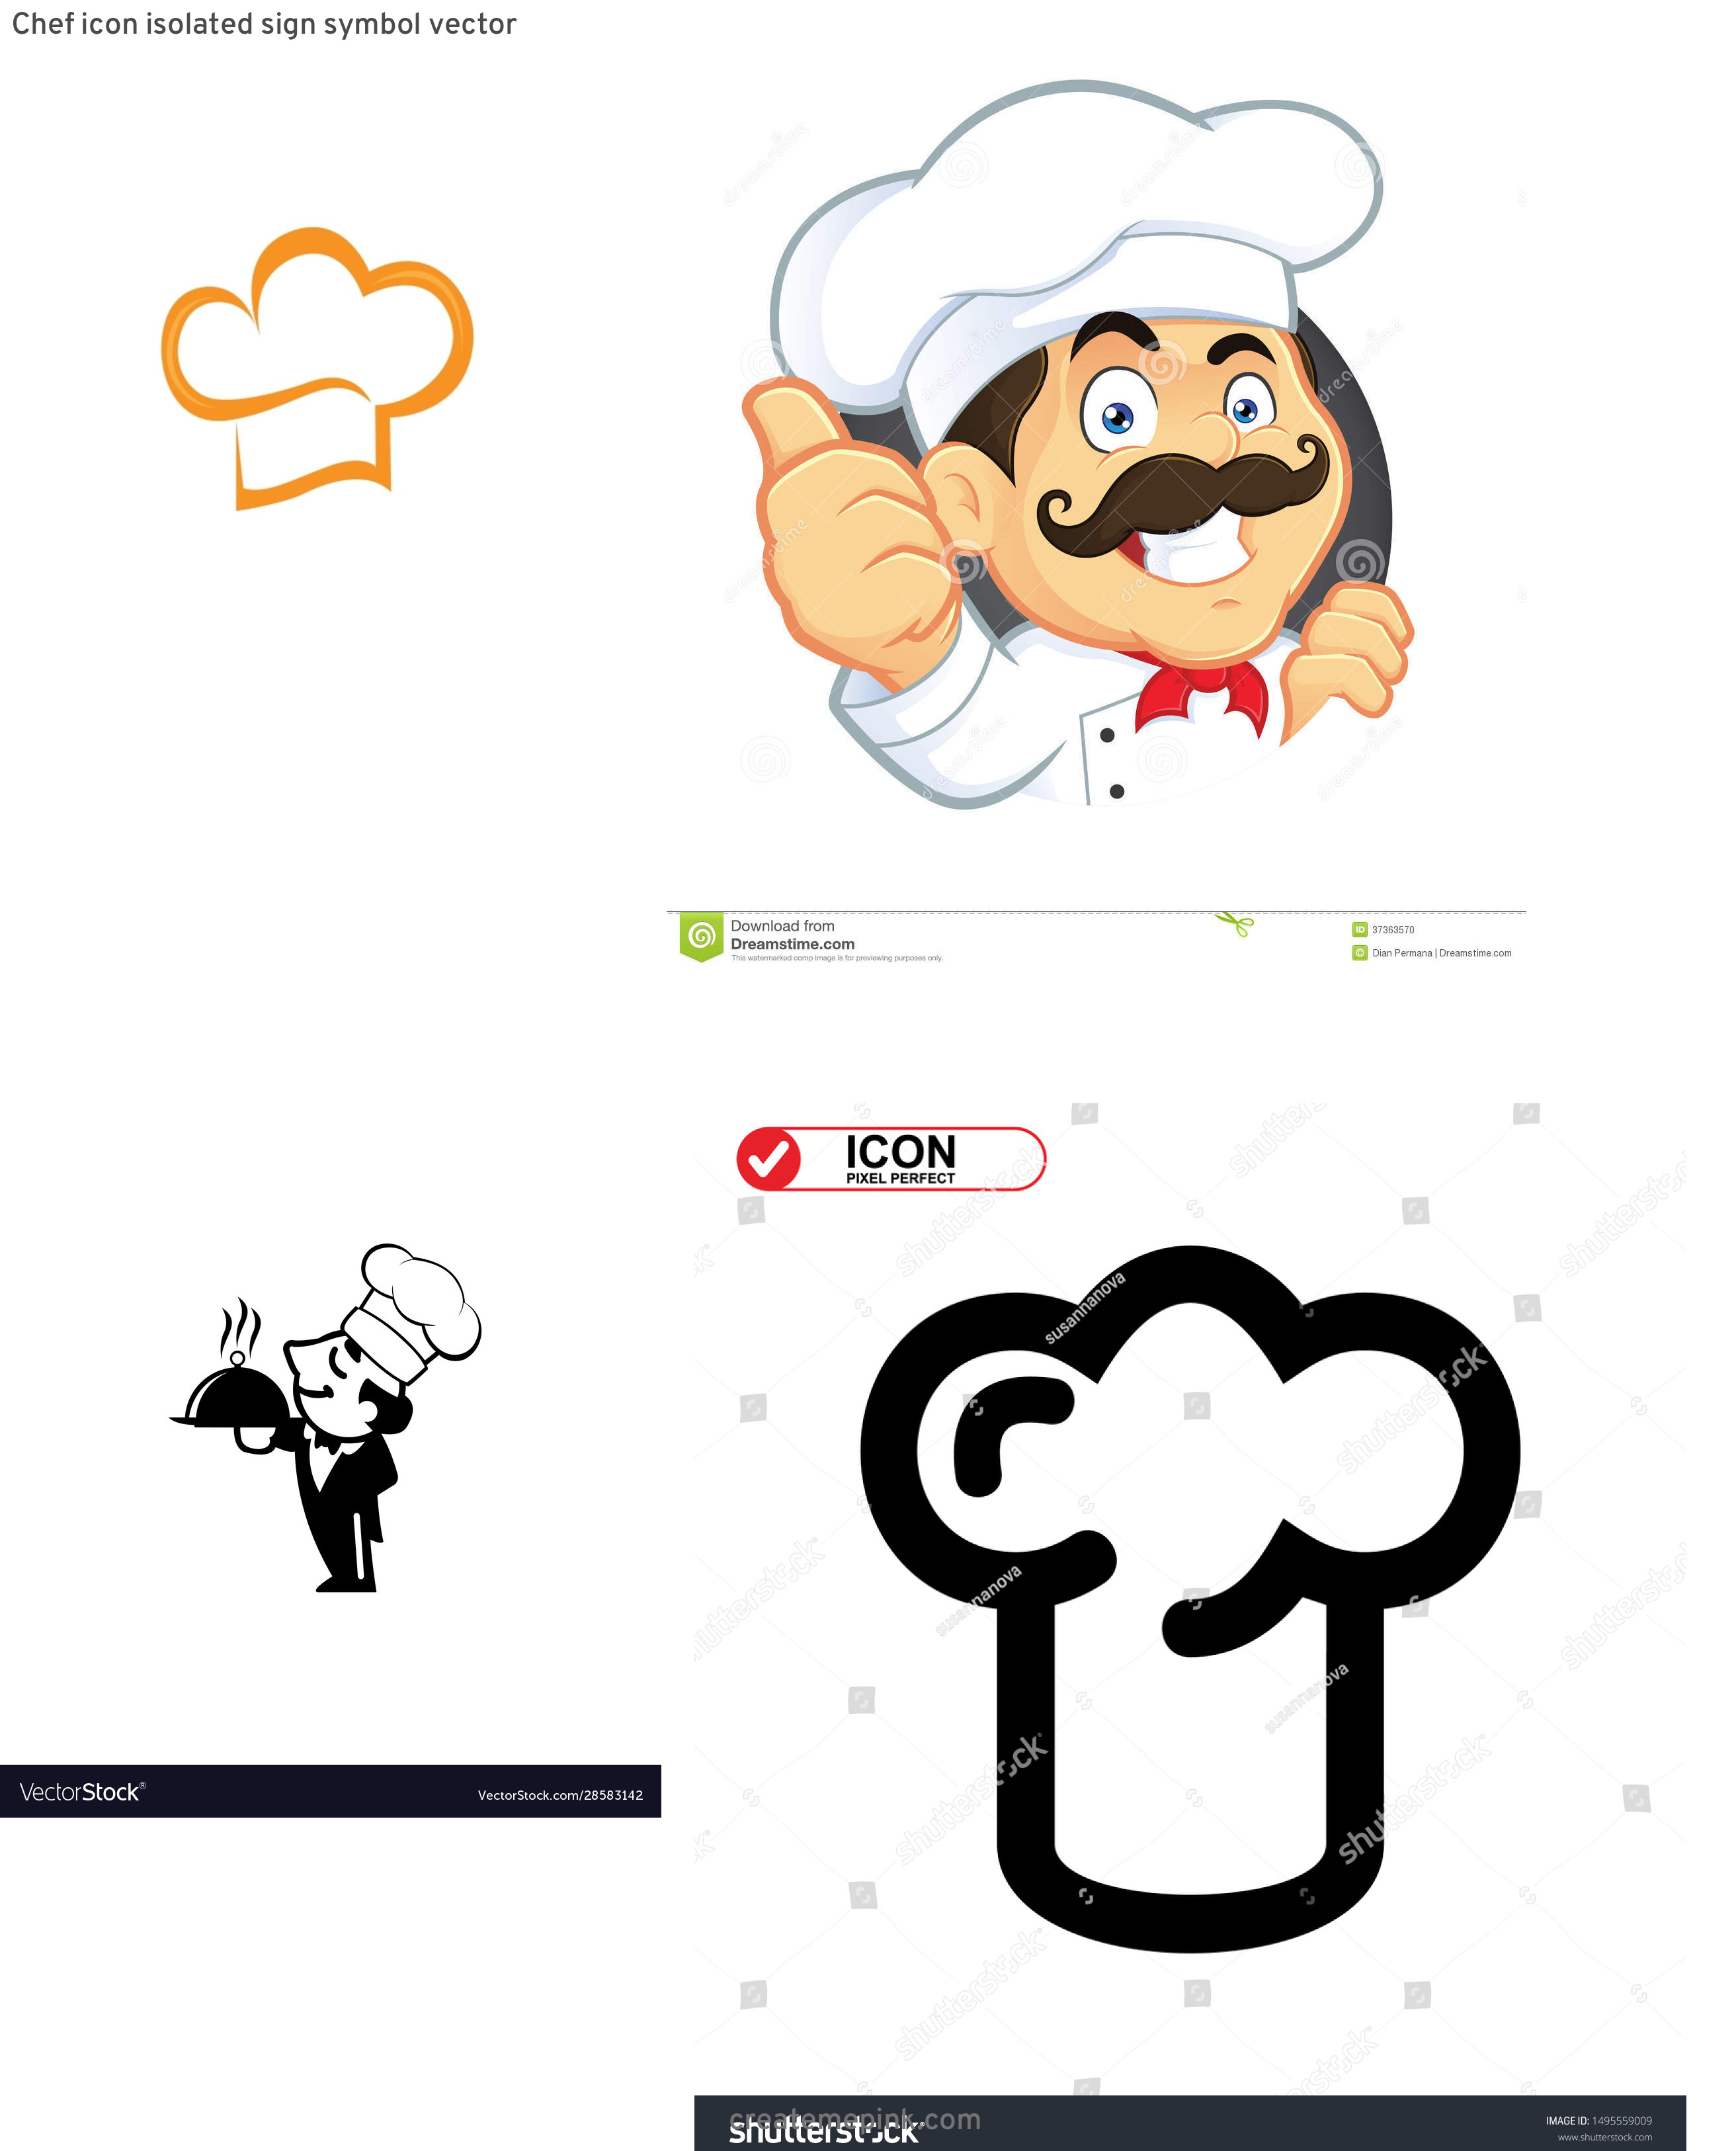 Chef Icon Vector: Chef Icon Isolated Sign Symbol Vector